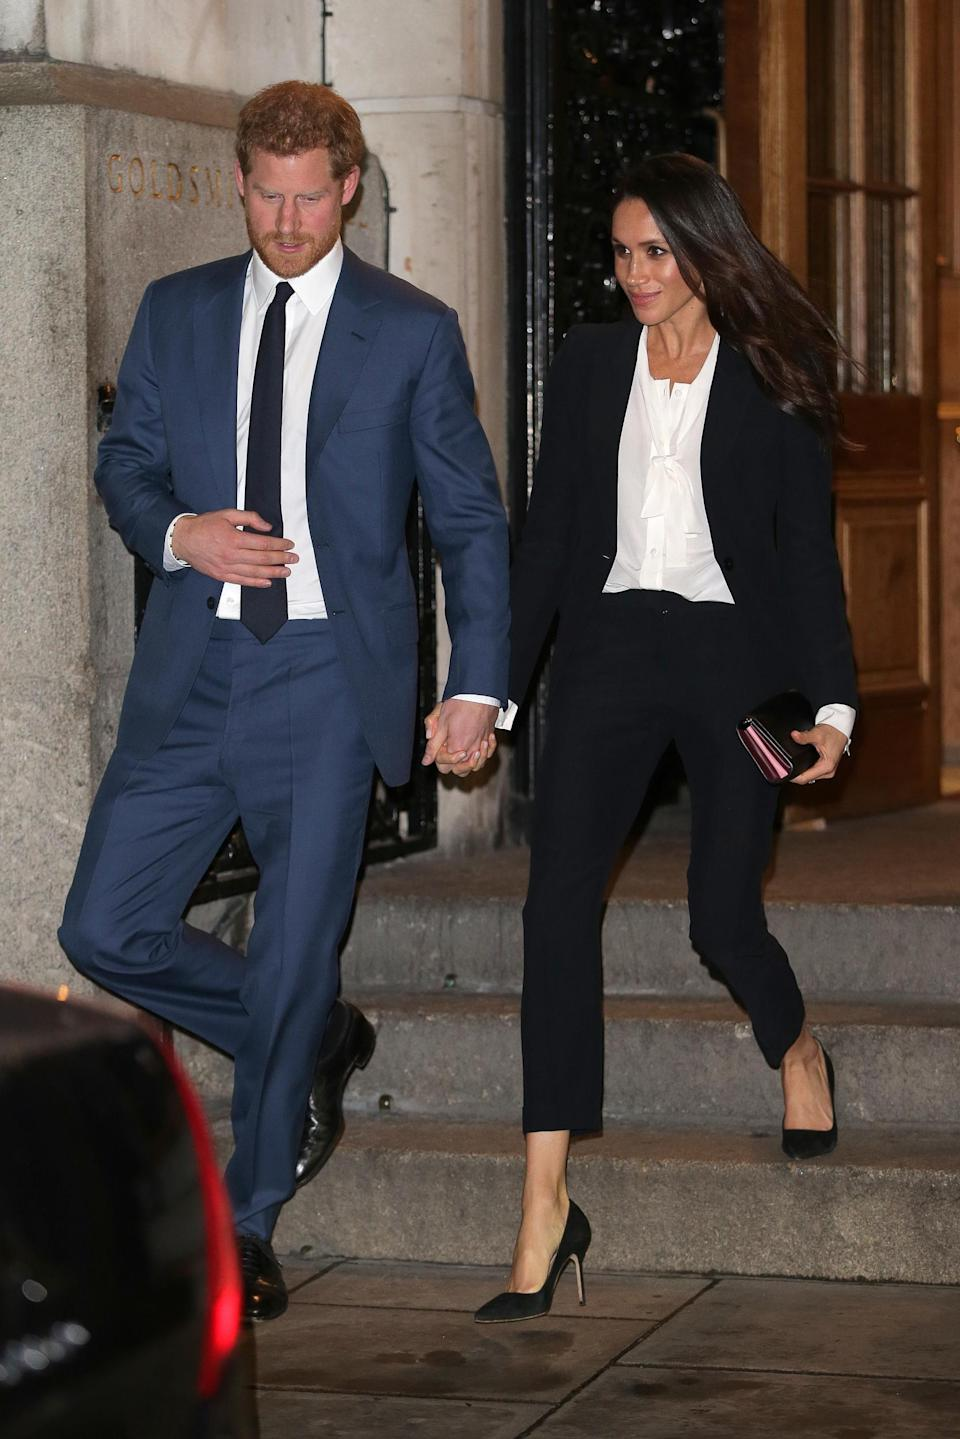 Prince Harry and Meghan Markle attend the Endeavour Awards 2018, the first time Markle wore her Alexander McQueen tuxedo (Getty Images)